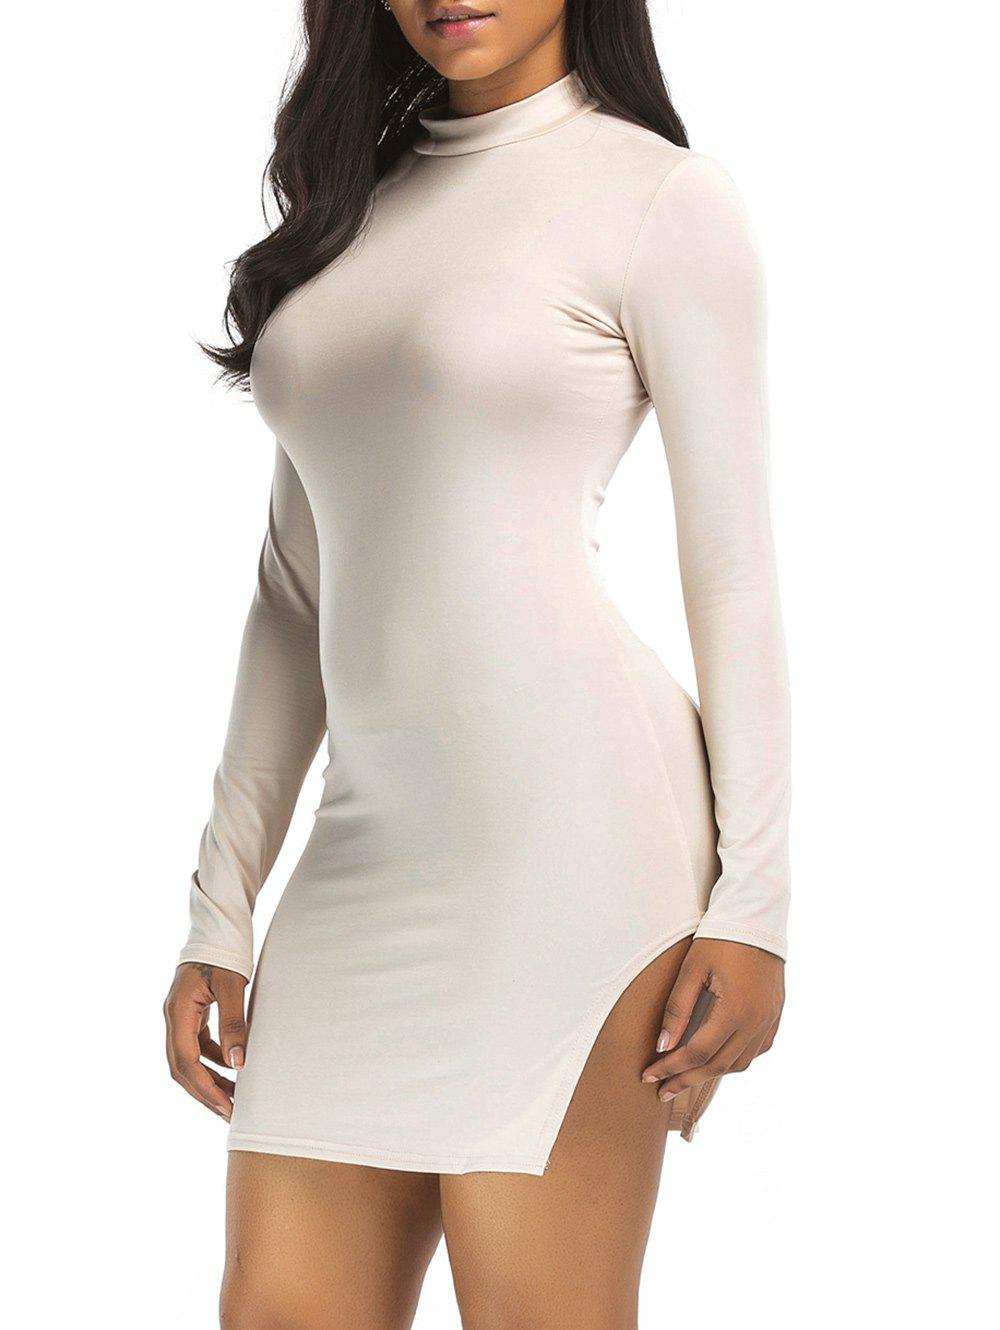 High Neck Slit Mini Bodycon Dress - LIGHT KHAKI XL